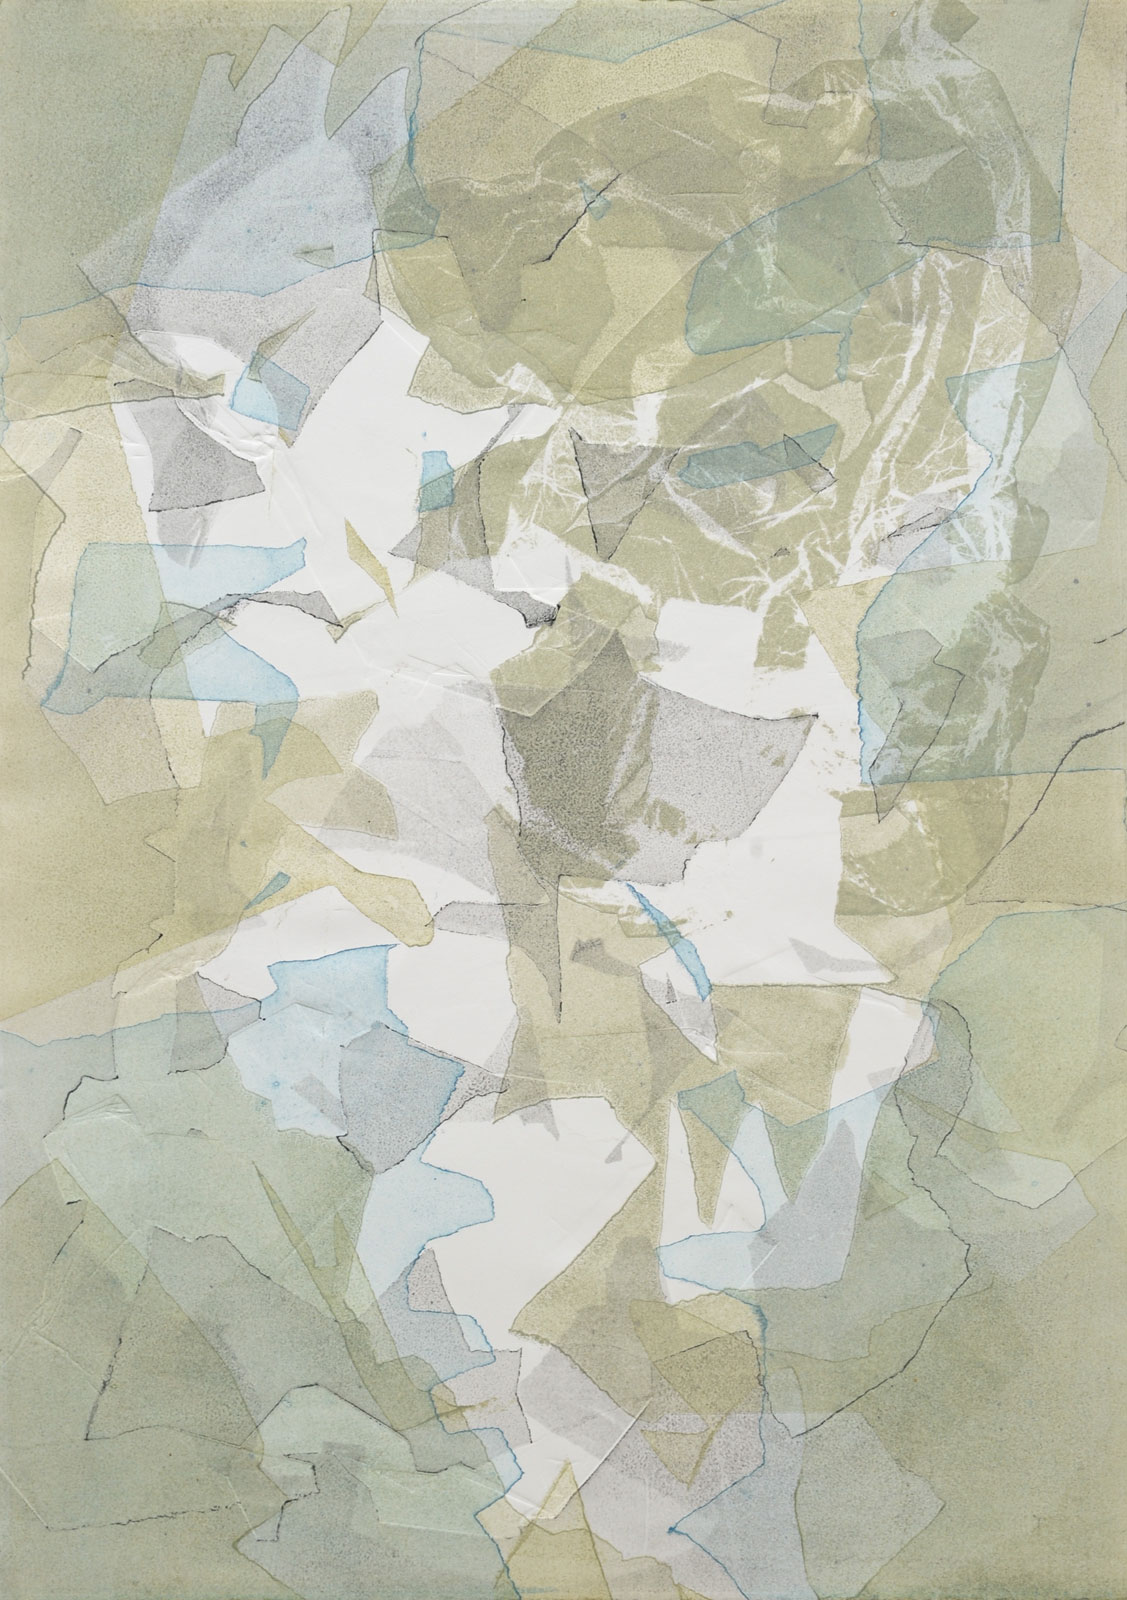 2012, Torn Paper, About Ice